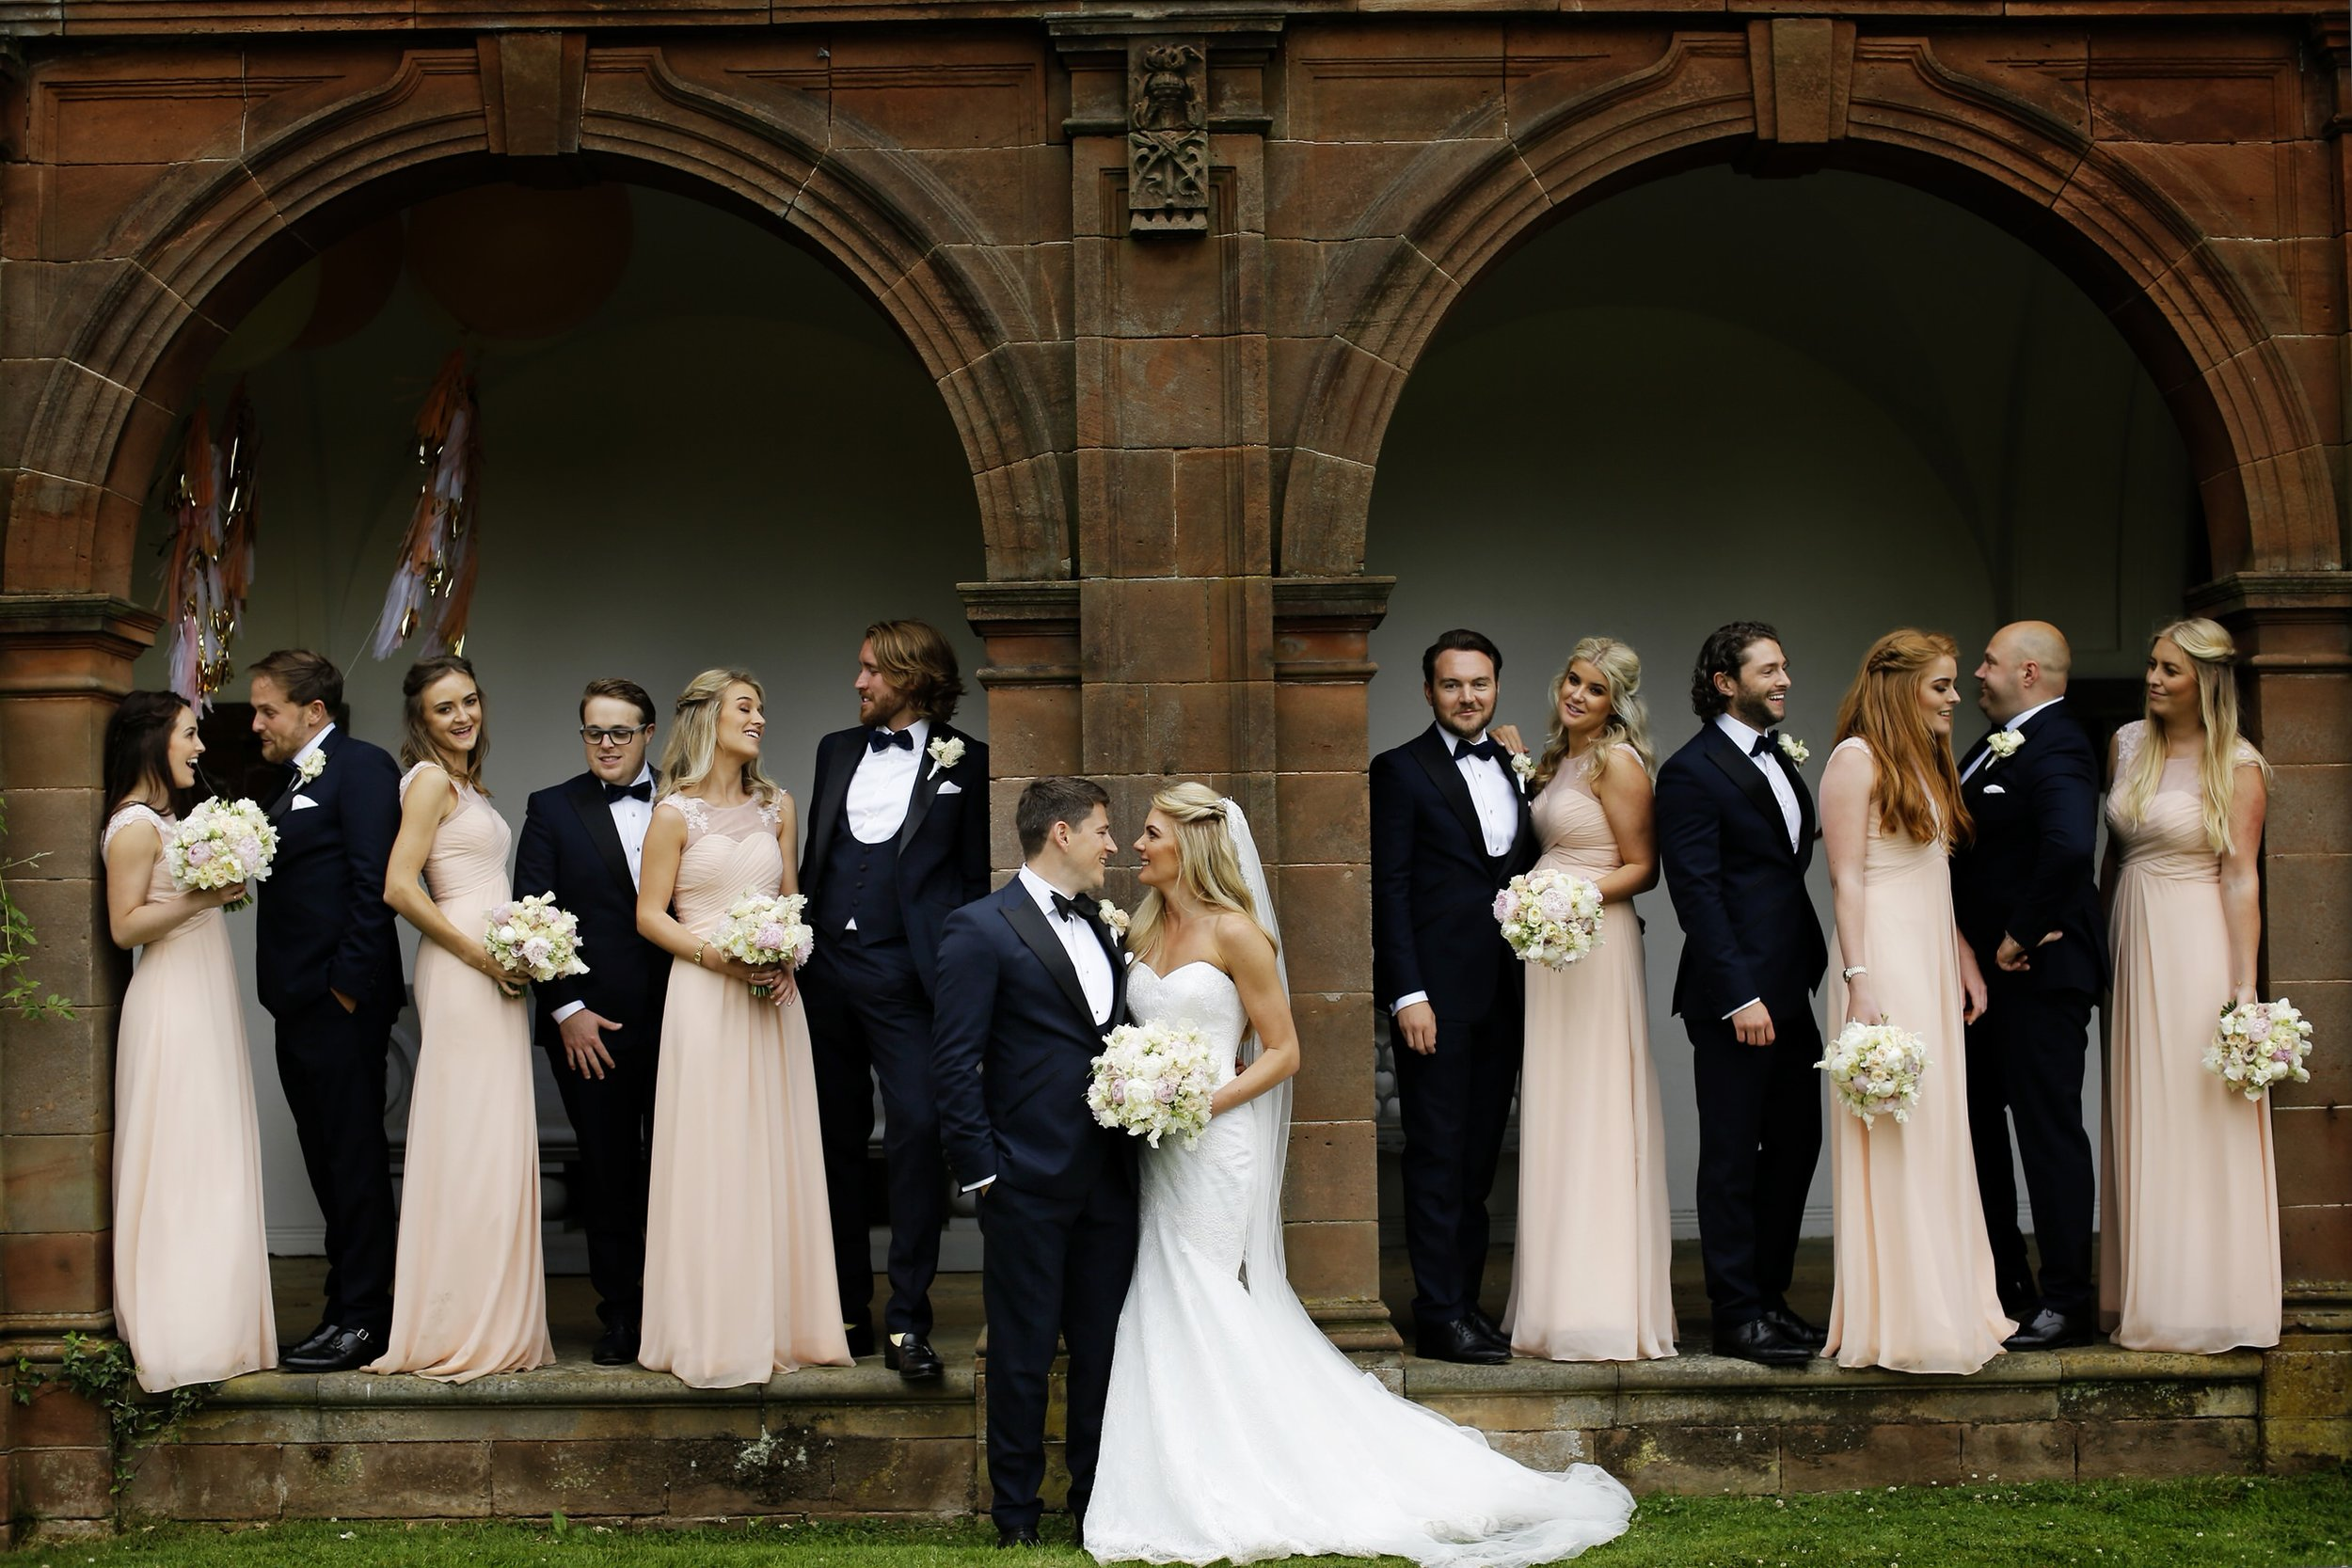 cheshire-wedding-photographer-thornton-manor-weddings_0017.jpg